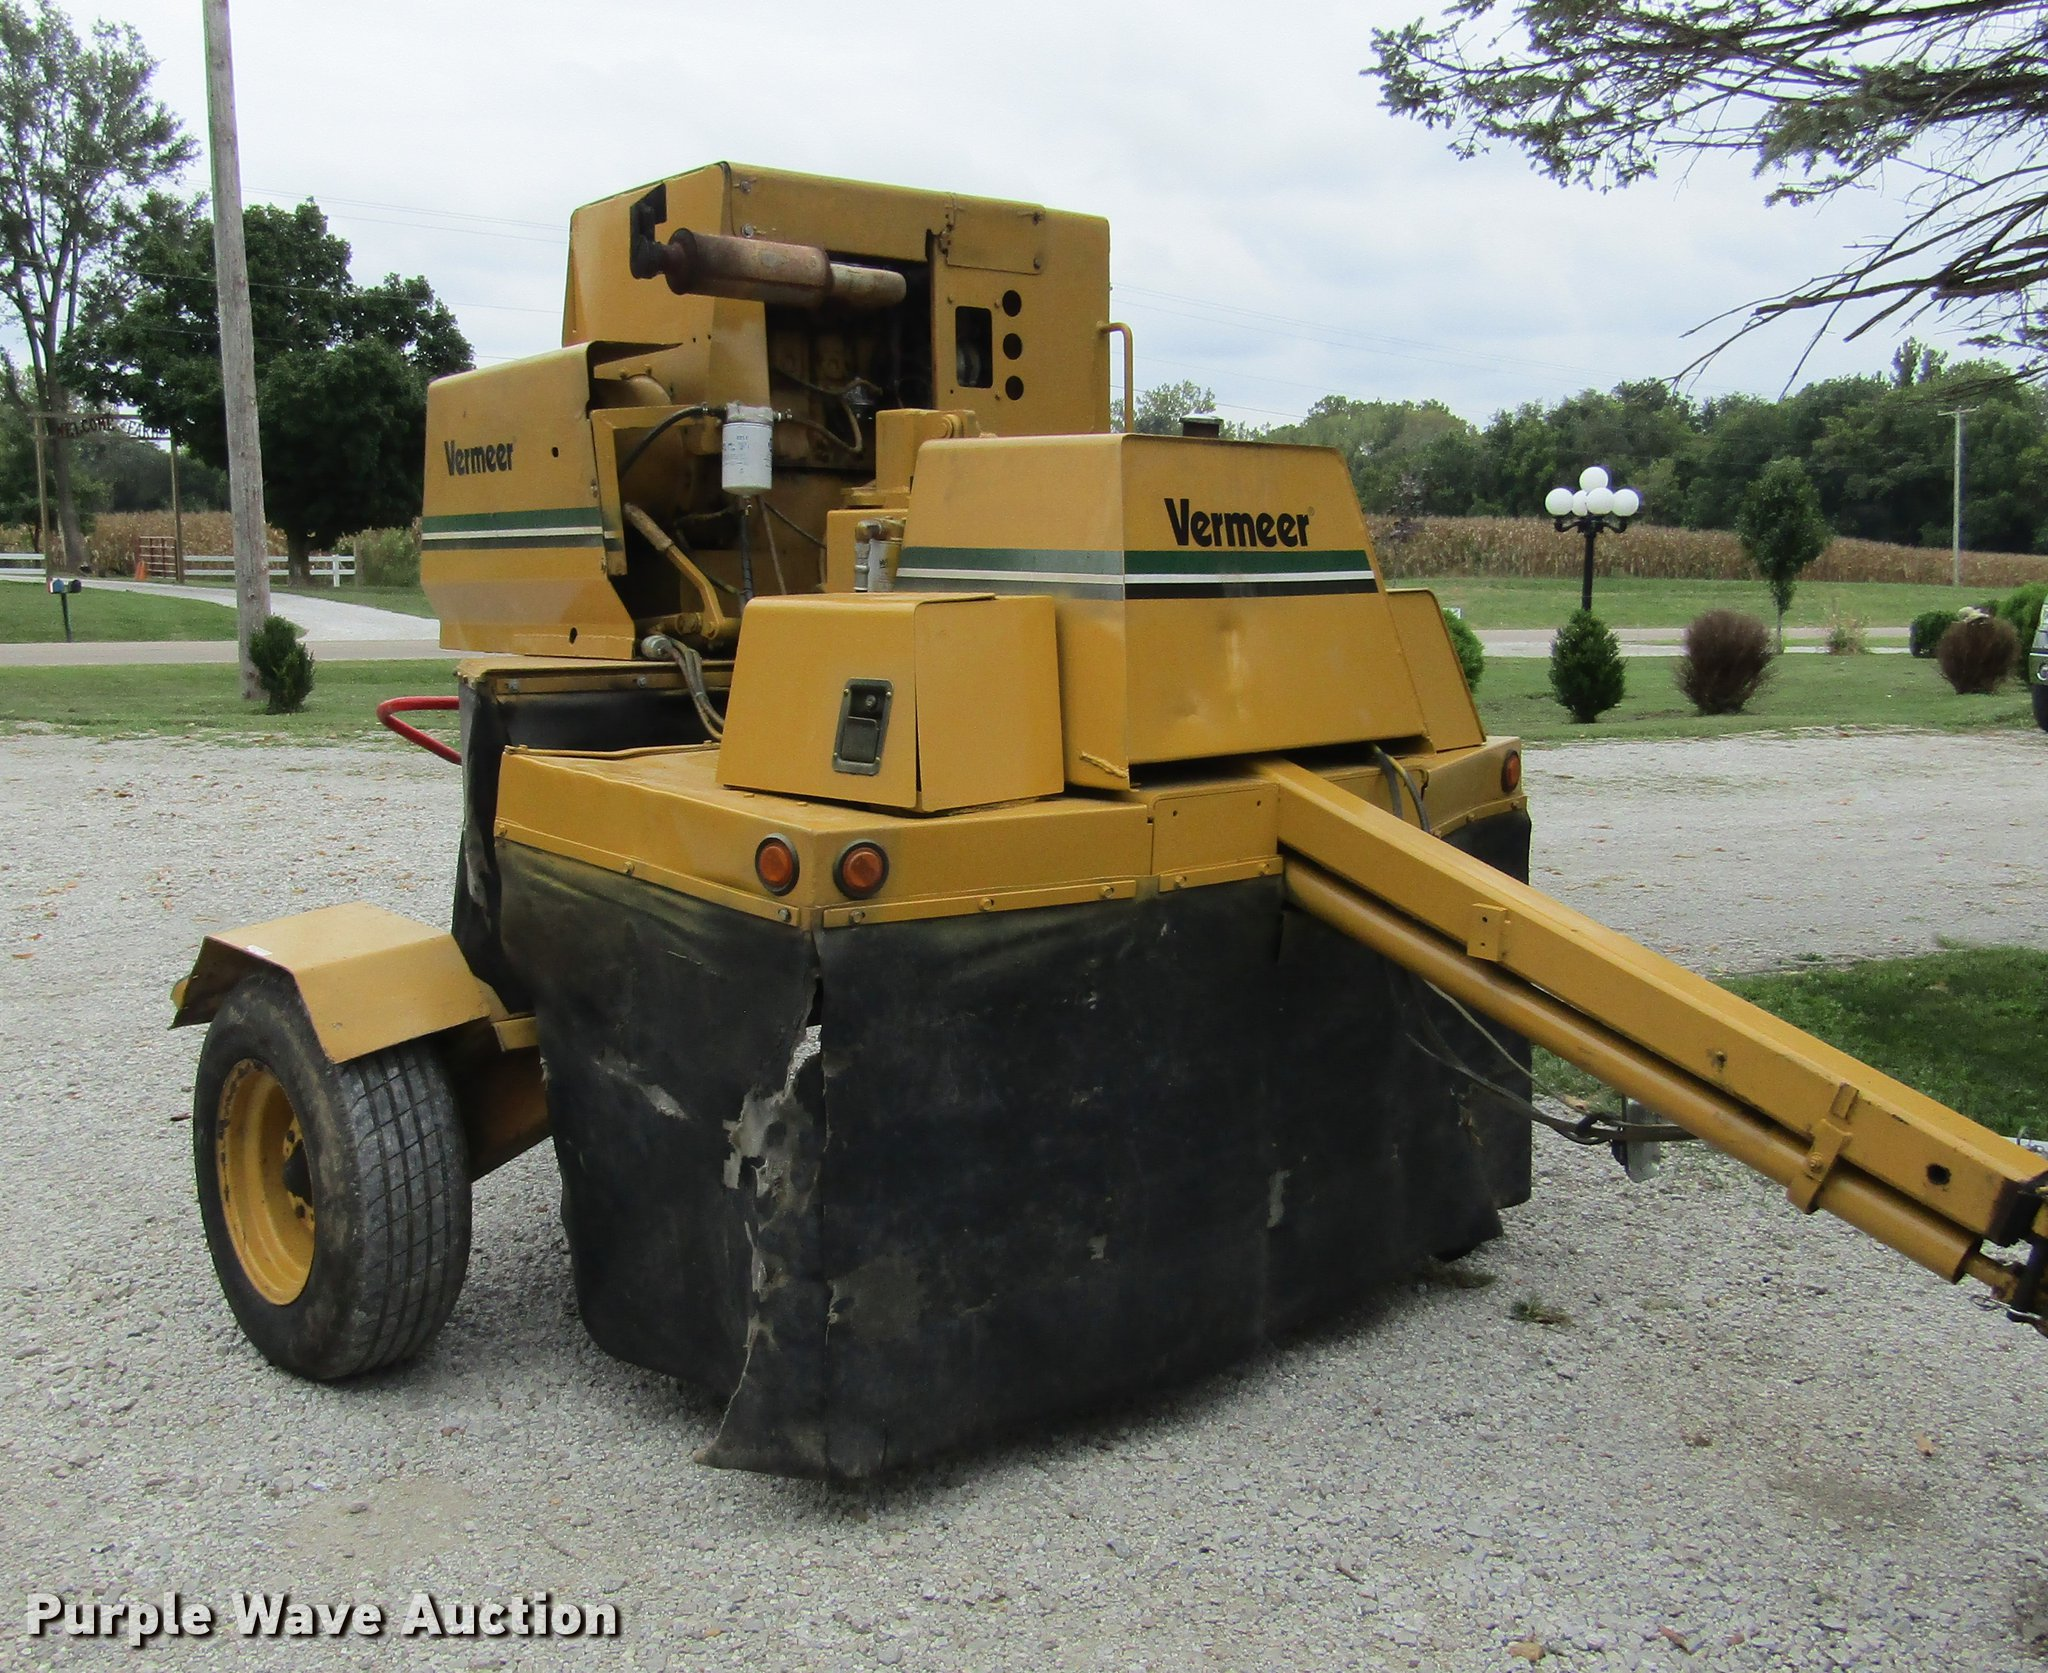 Vermeer Sc252 Wiring Diagram Trusted Diagrams Lull 665b Schematic 1993 Stump Grinder Item Dd2672